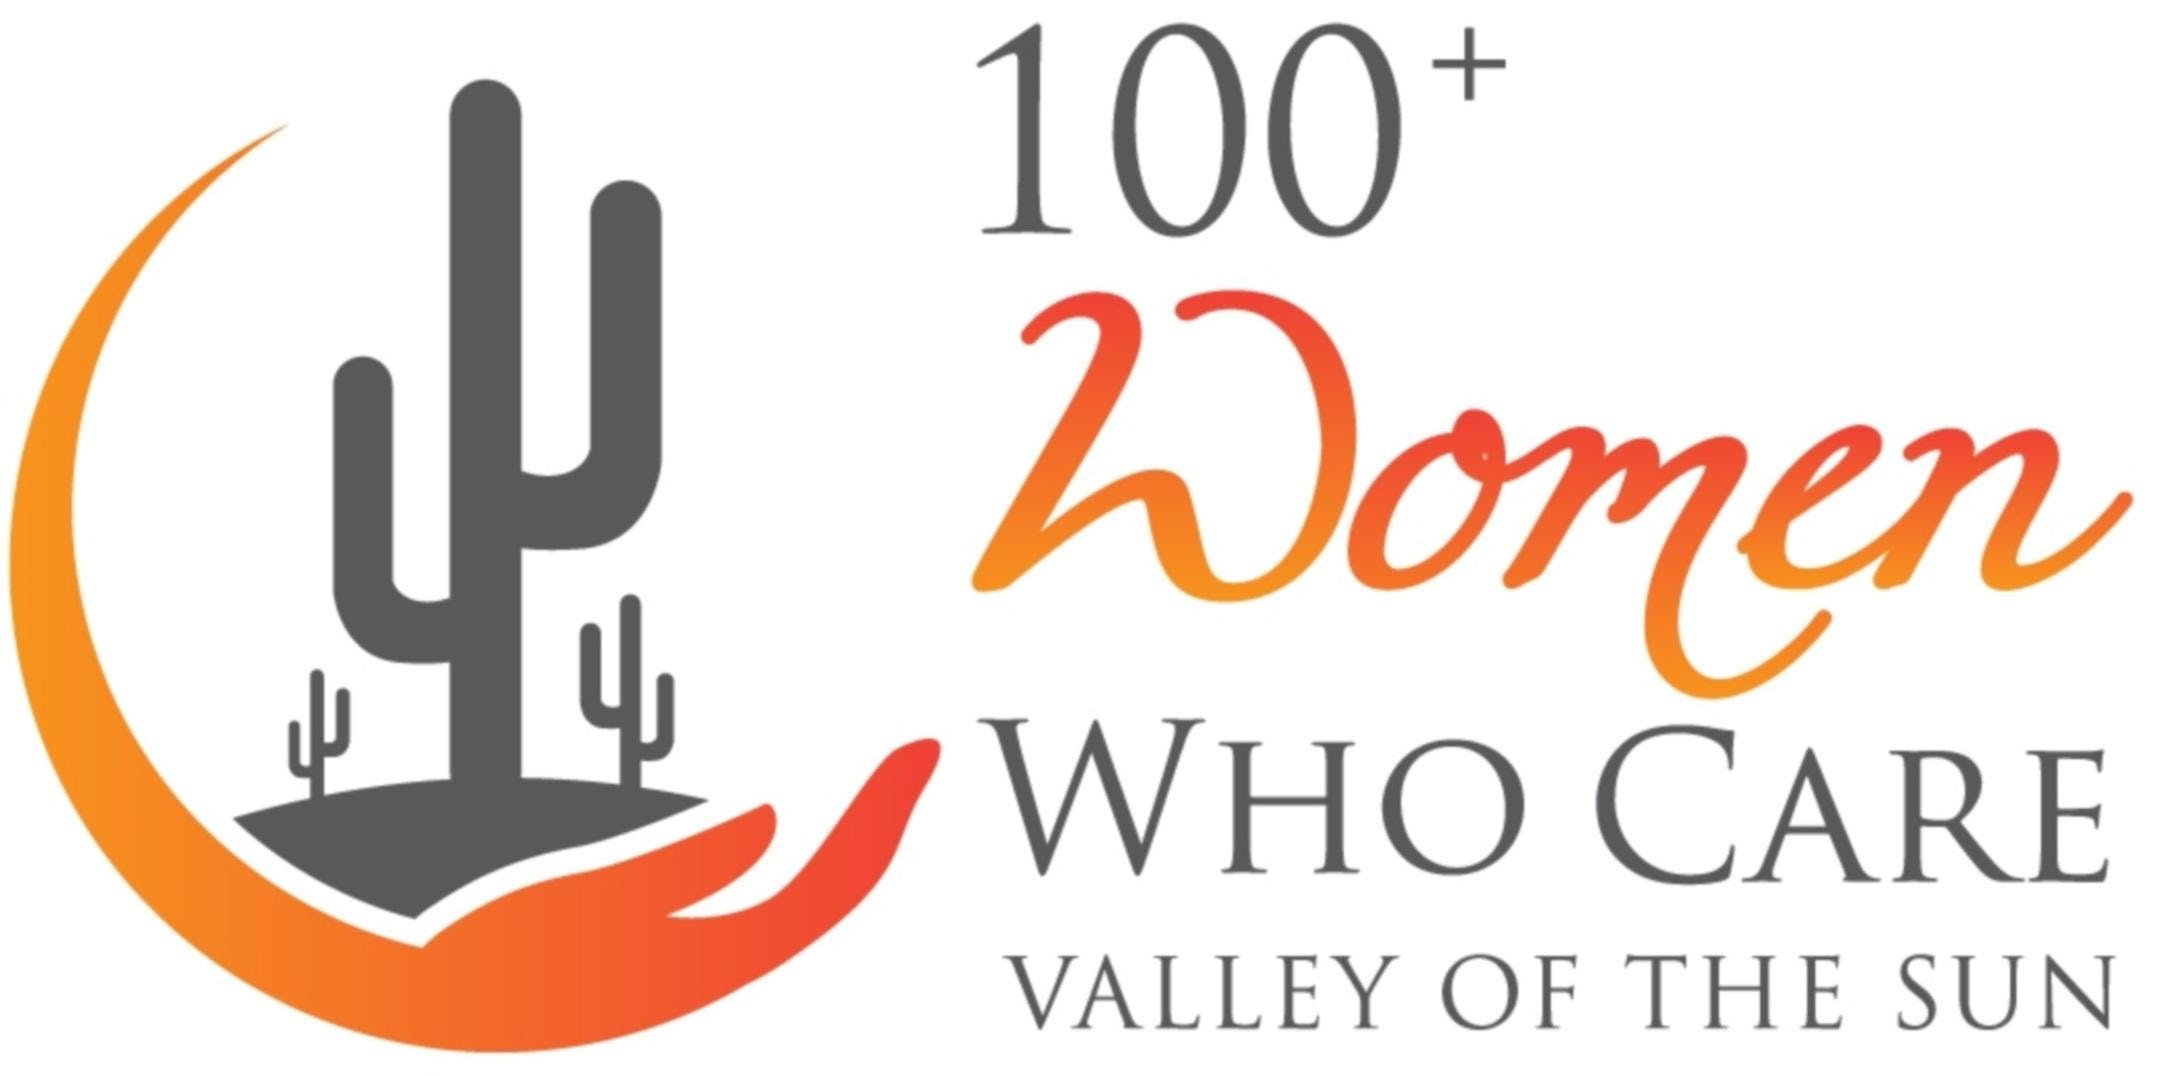 Women Who Care Valley of the Sun - Q3 Giving Circle in Ahwatukee